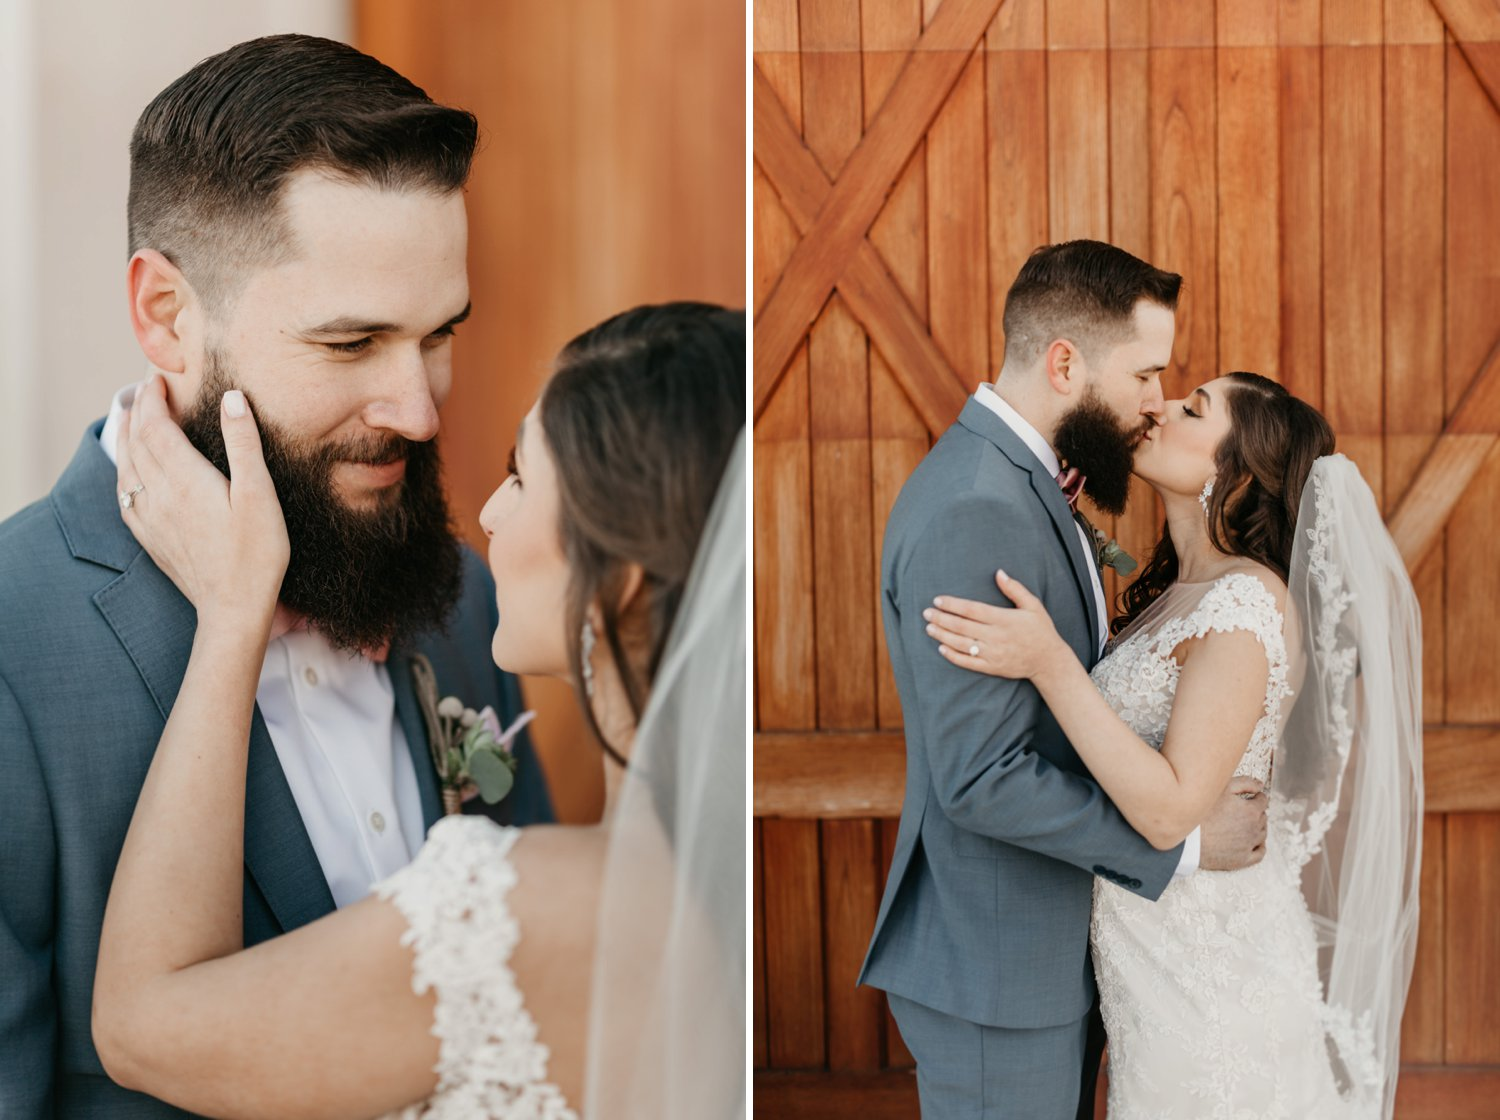 Thousand Acre Farms wedding Delaware wedding photographer | bride and groom first look portraits outdoor wedding